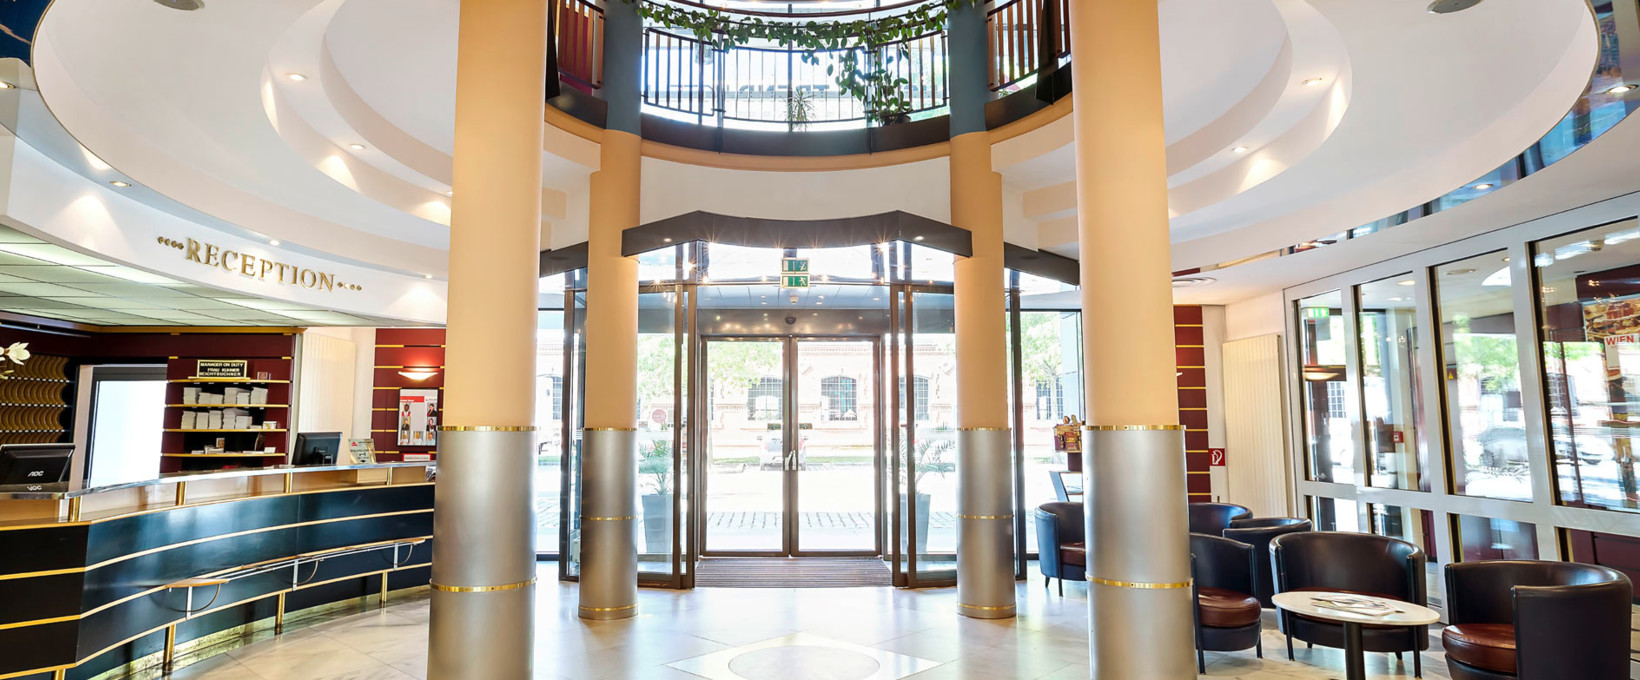 Lobby entrance area with reception| Hotel Lassalle in Vienna